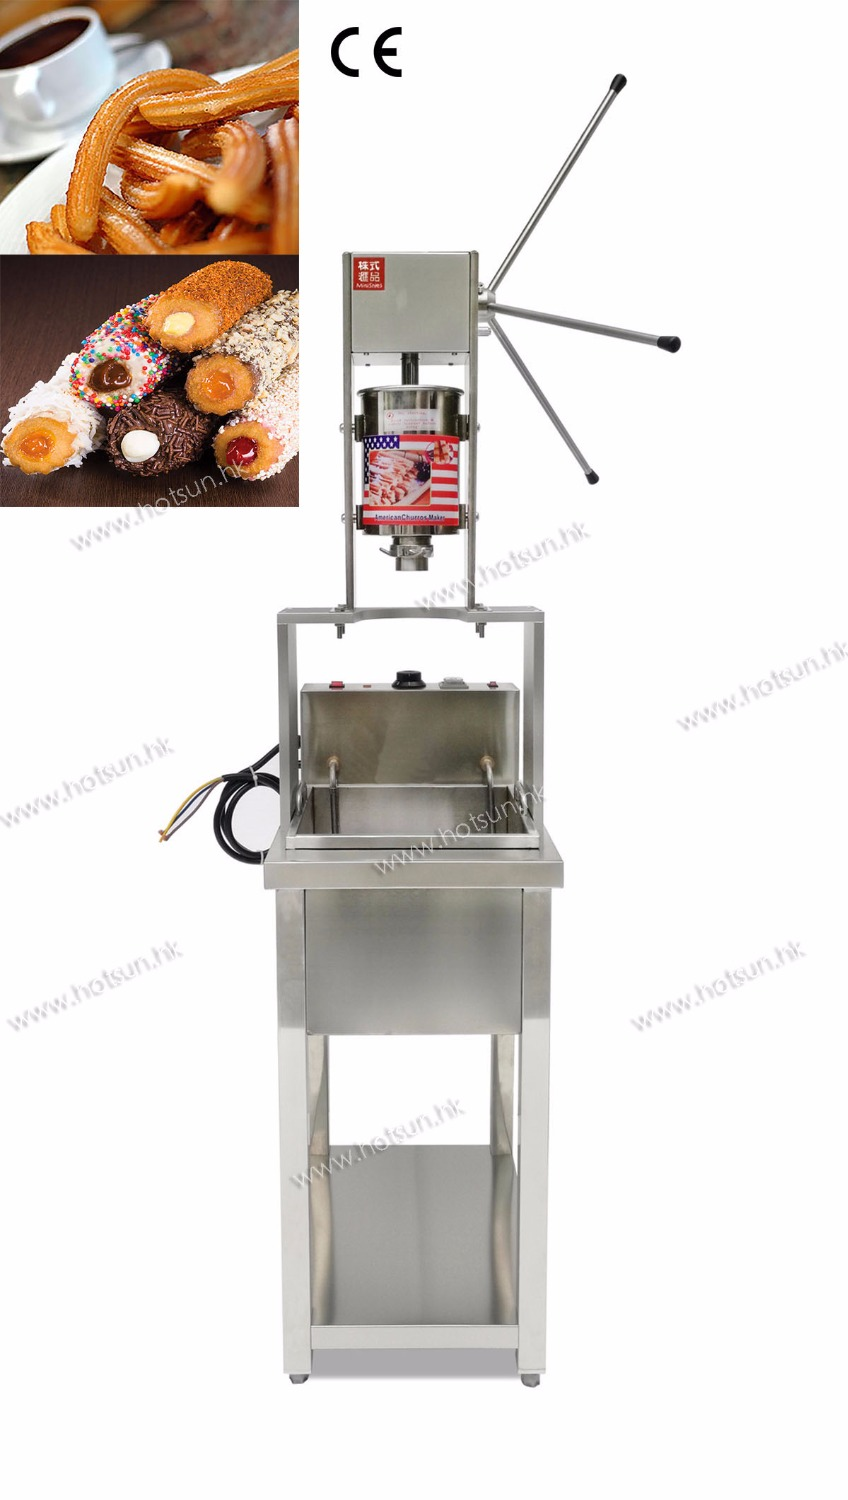 5L Professional 304 Stainless Steel Churros Maker machine with 20L Electric Deep Fryer cukyi household electric multi function cooker 220v stainless steel colorful stew cook steam machine 5 in 1